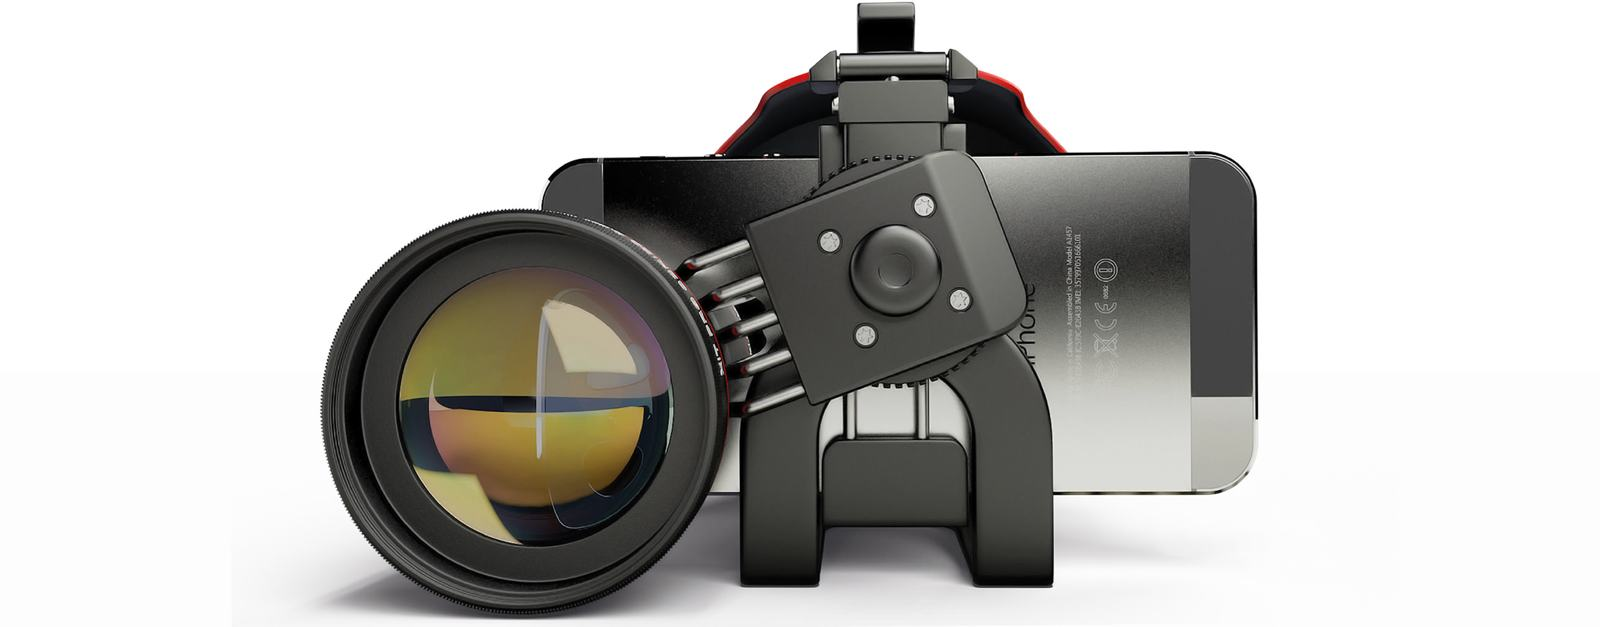 IndieVice cameralens